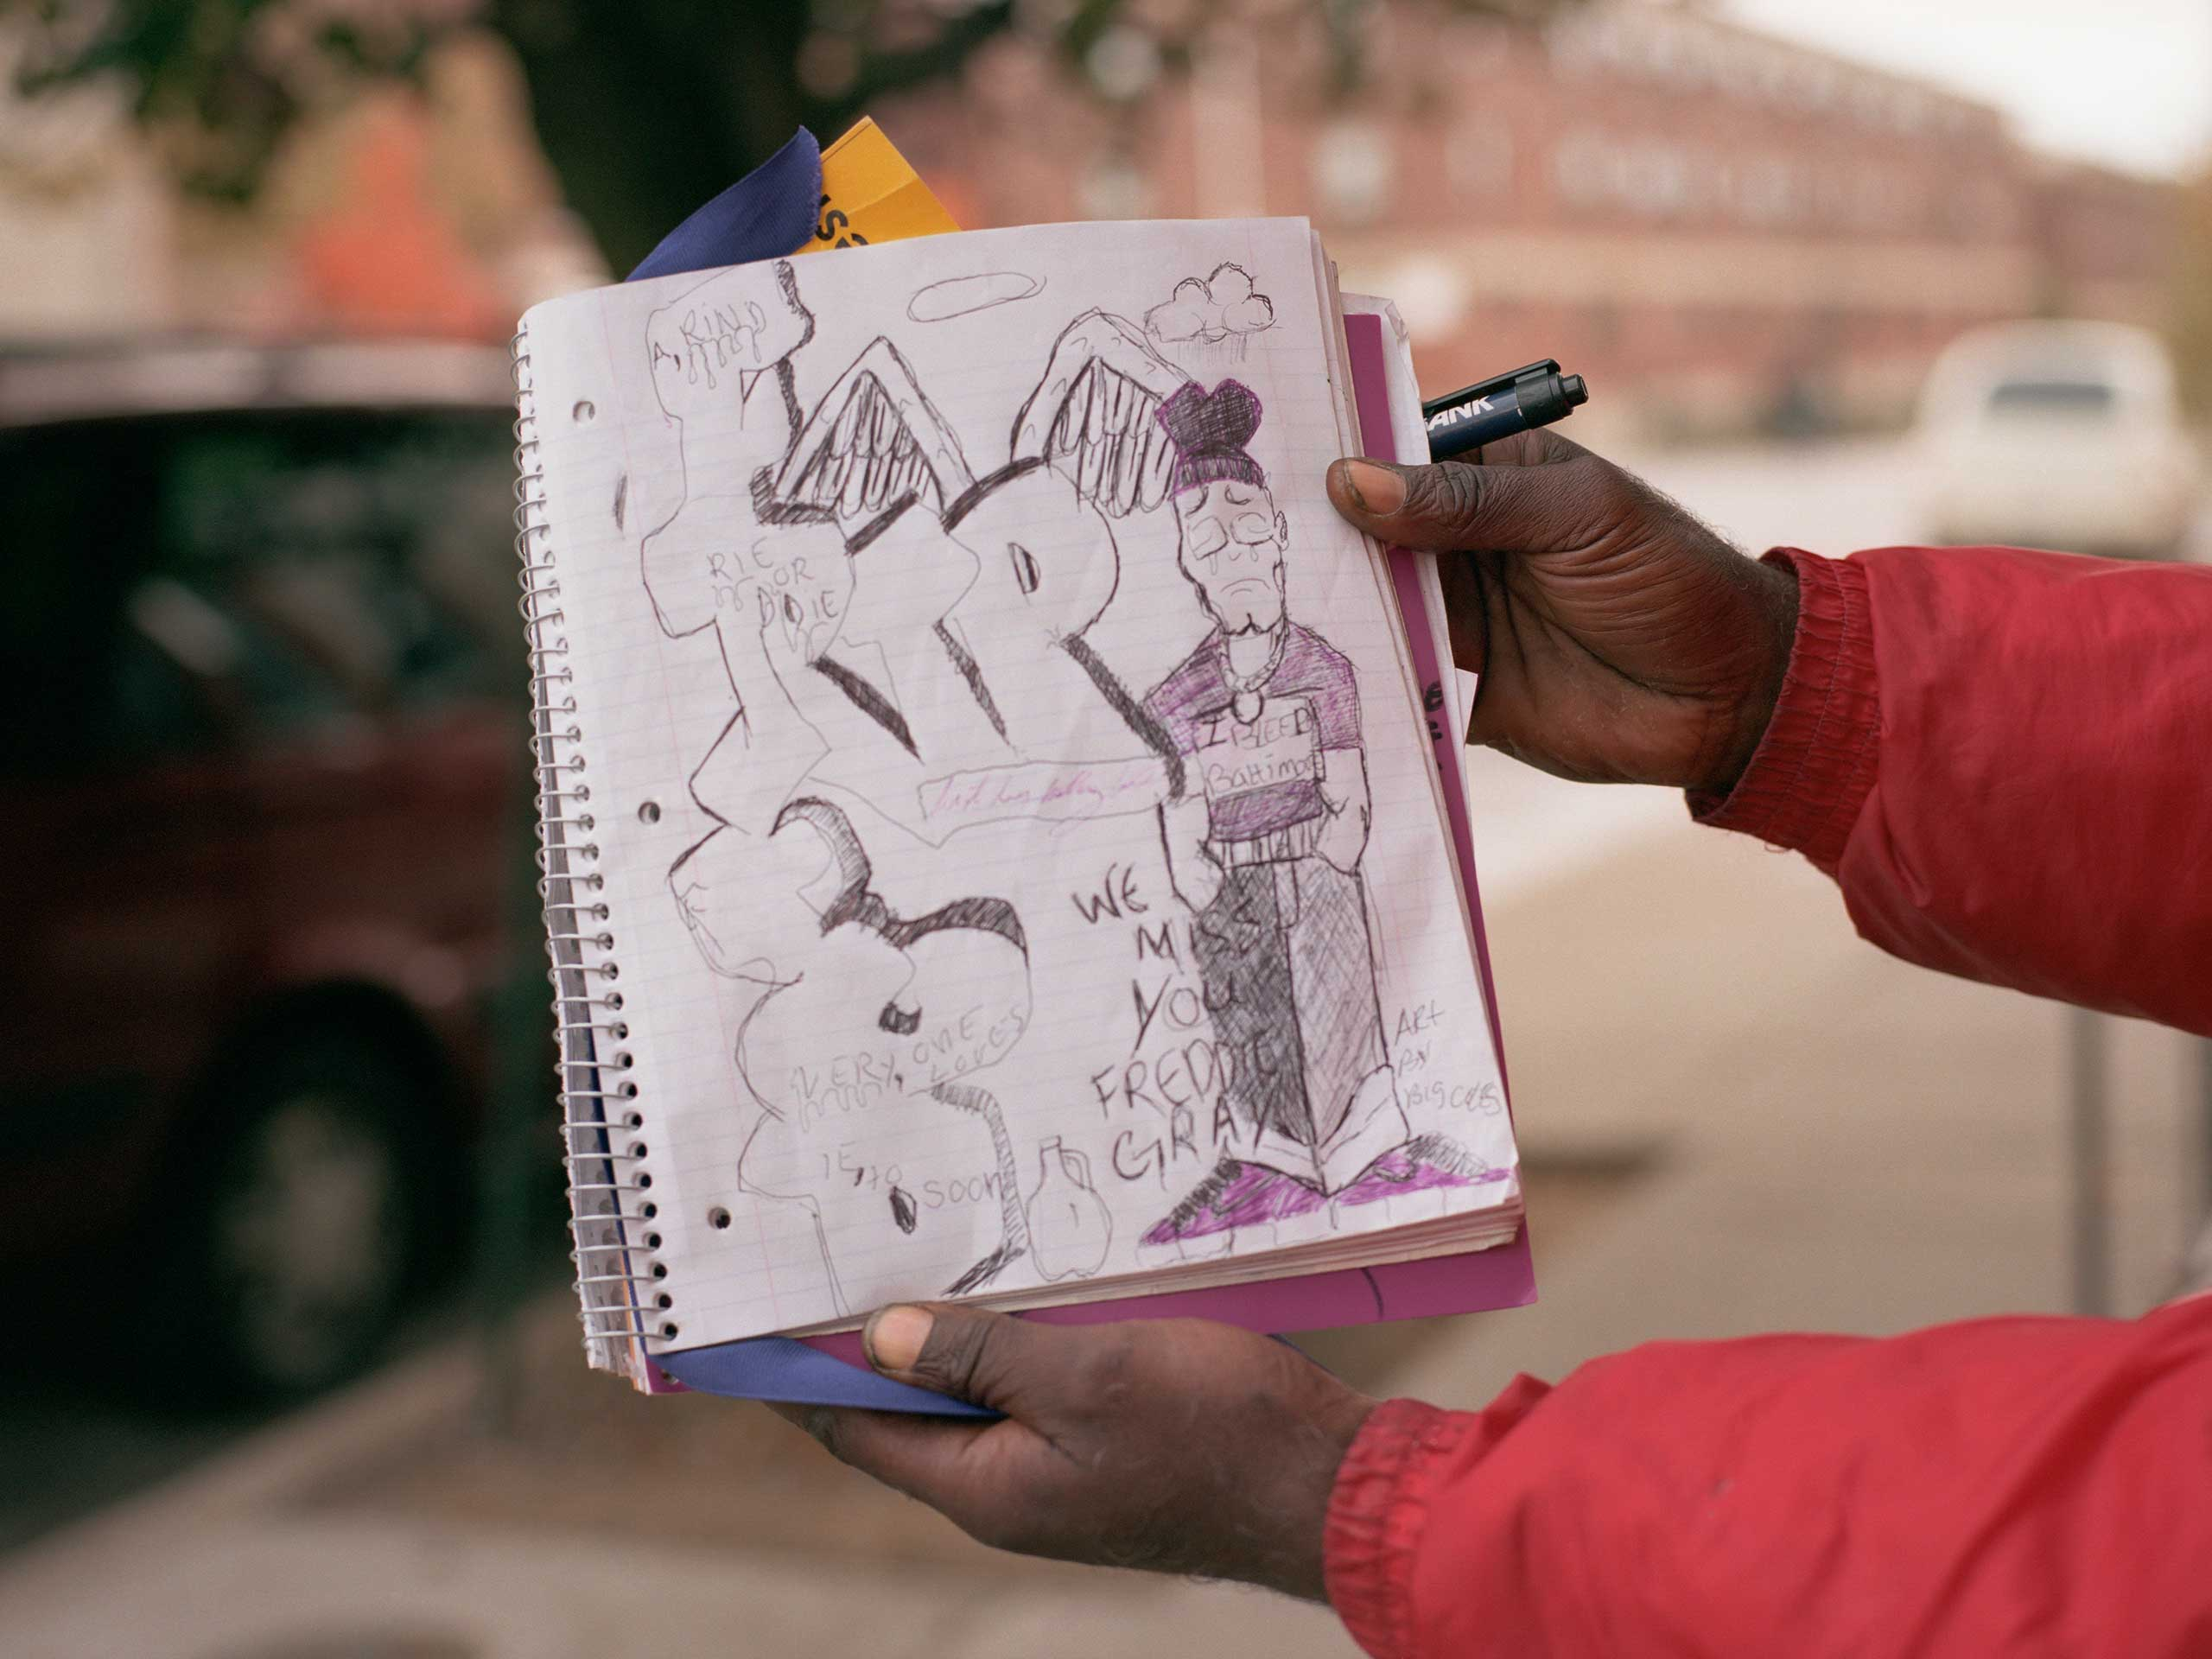 Anthony Coles holds up a drawing he made celebrating Freddie Gray.